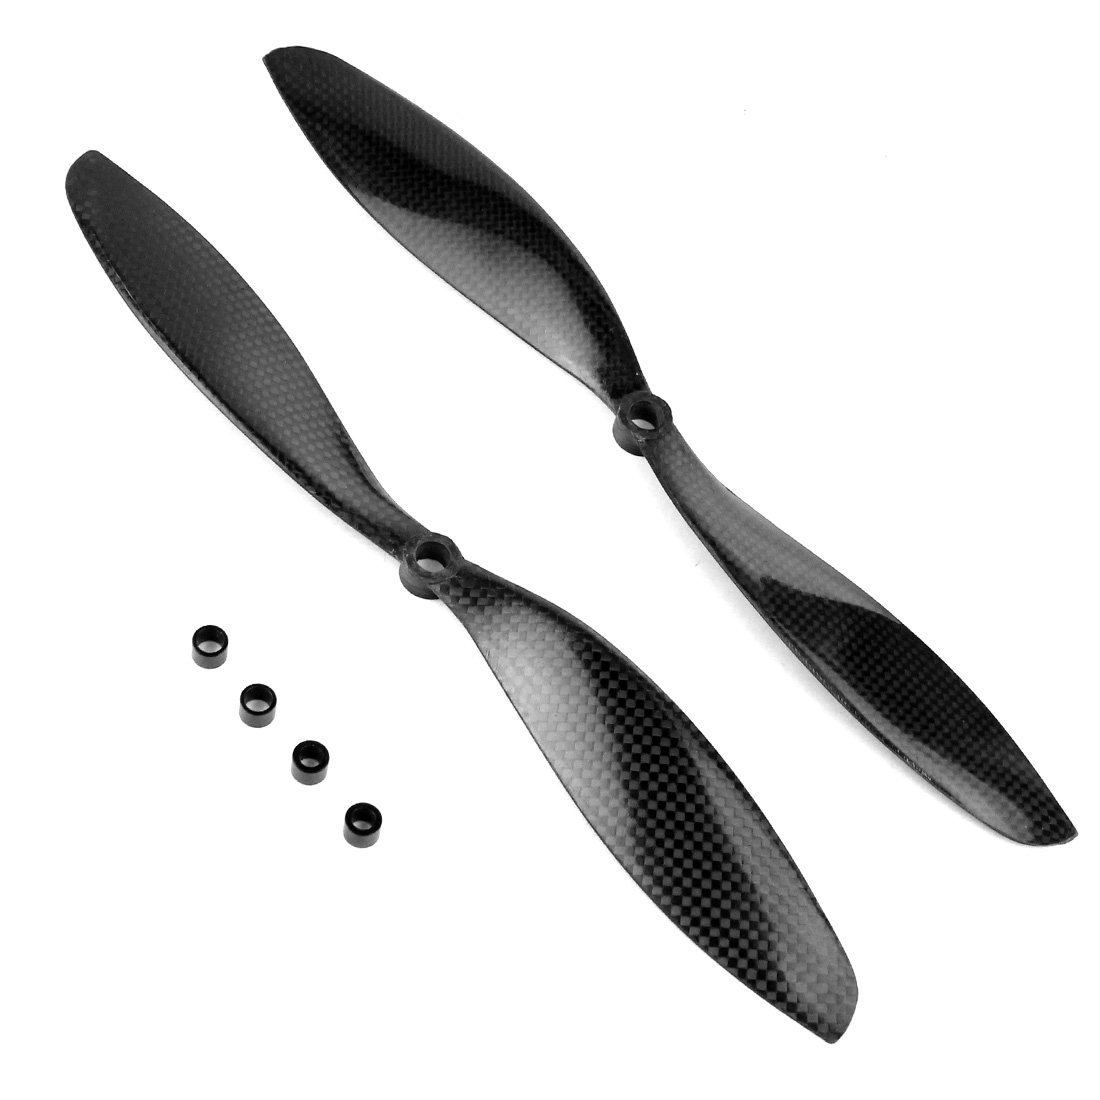 11x4.7 3K Carbon Fiber Propeller CW CCW 1147 CF Props For RC Quadcopter Hexacopter Multi Rotor UFO + FS Drone Accessory F05306